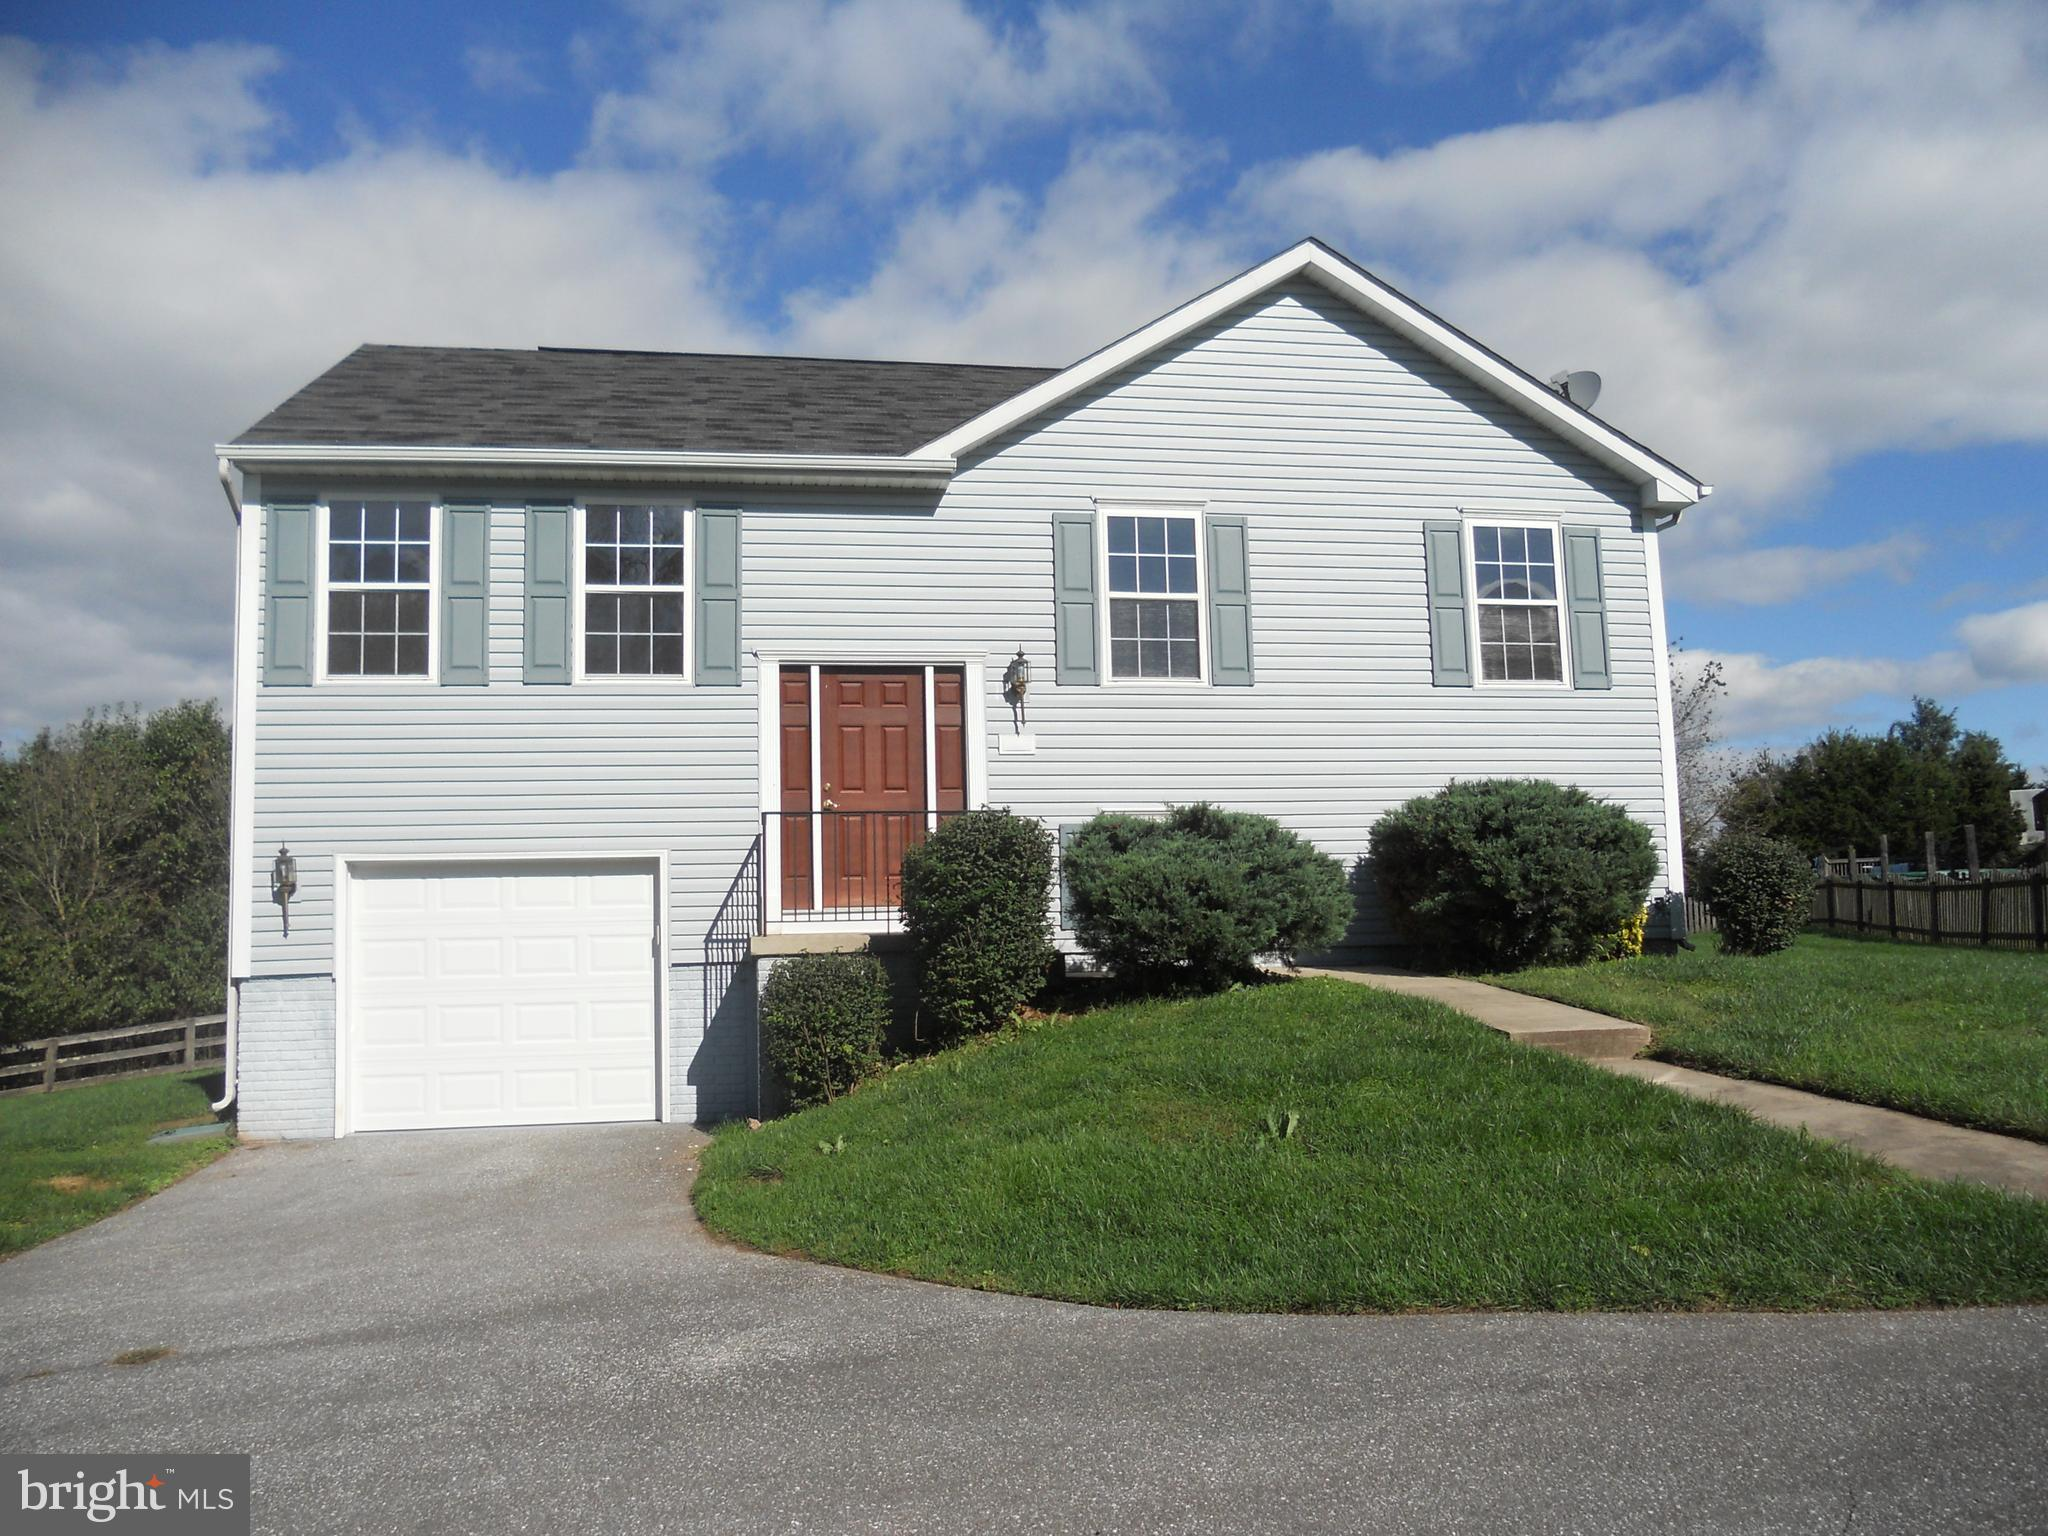 Lovely split foyer with 3 bedrooms and 2 full baths ,eat in kitchen with island and slider, living r